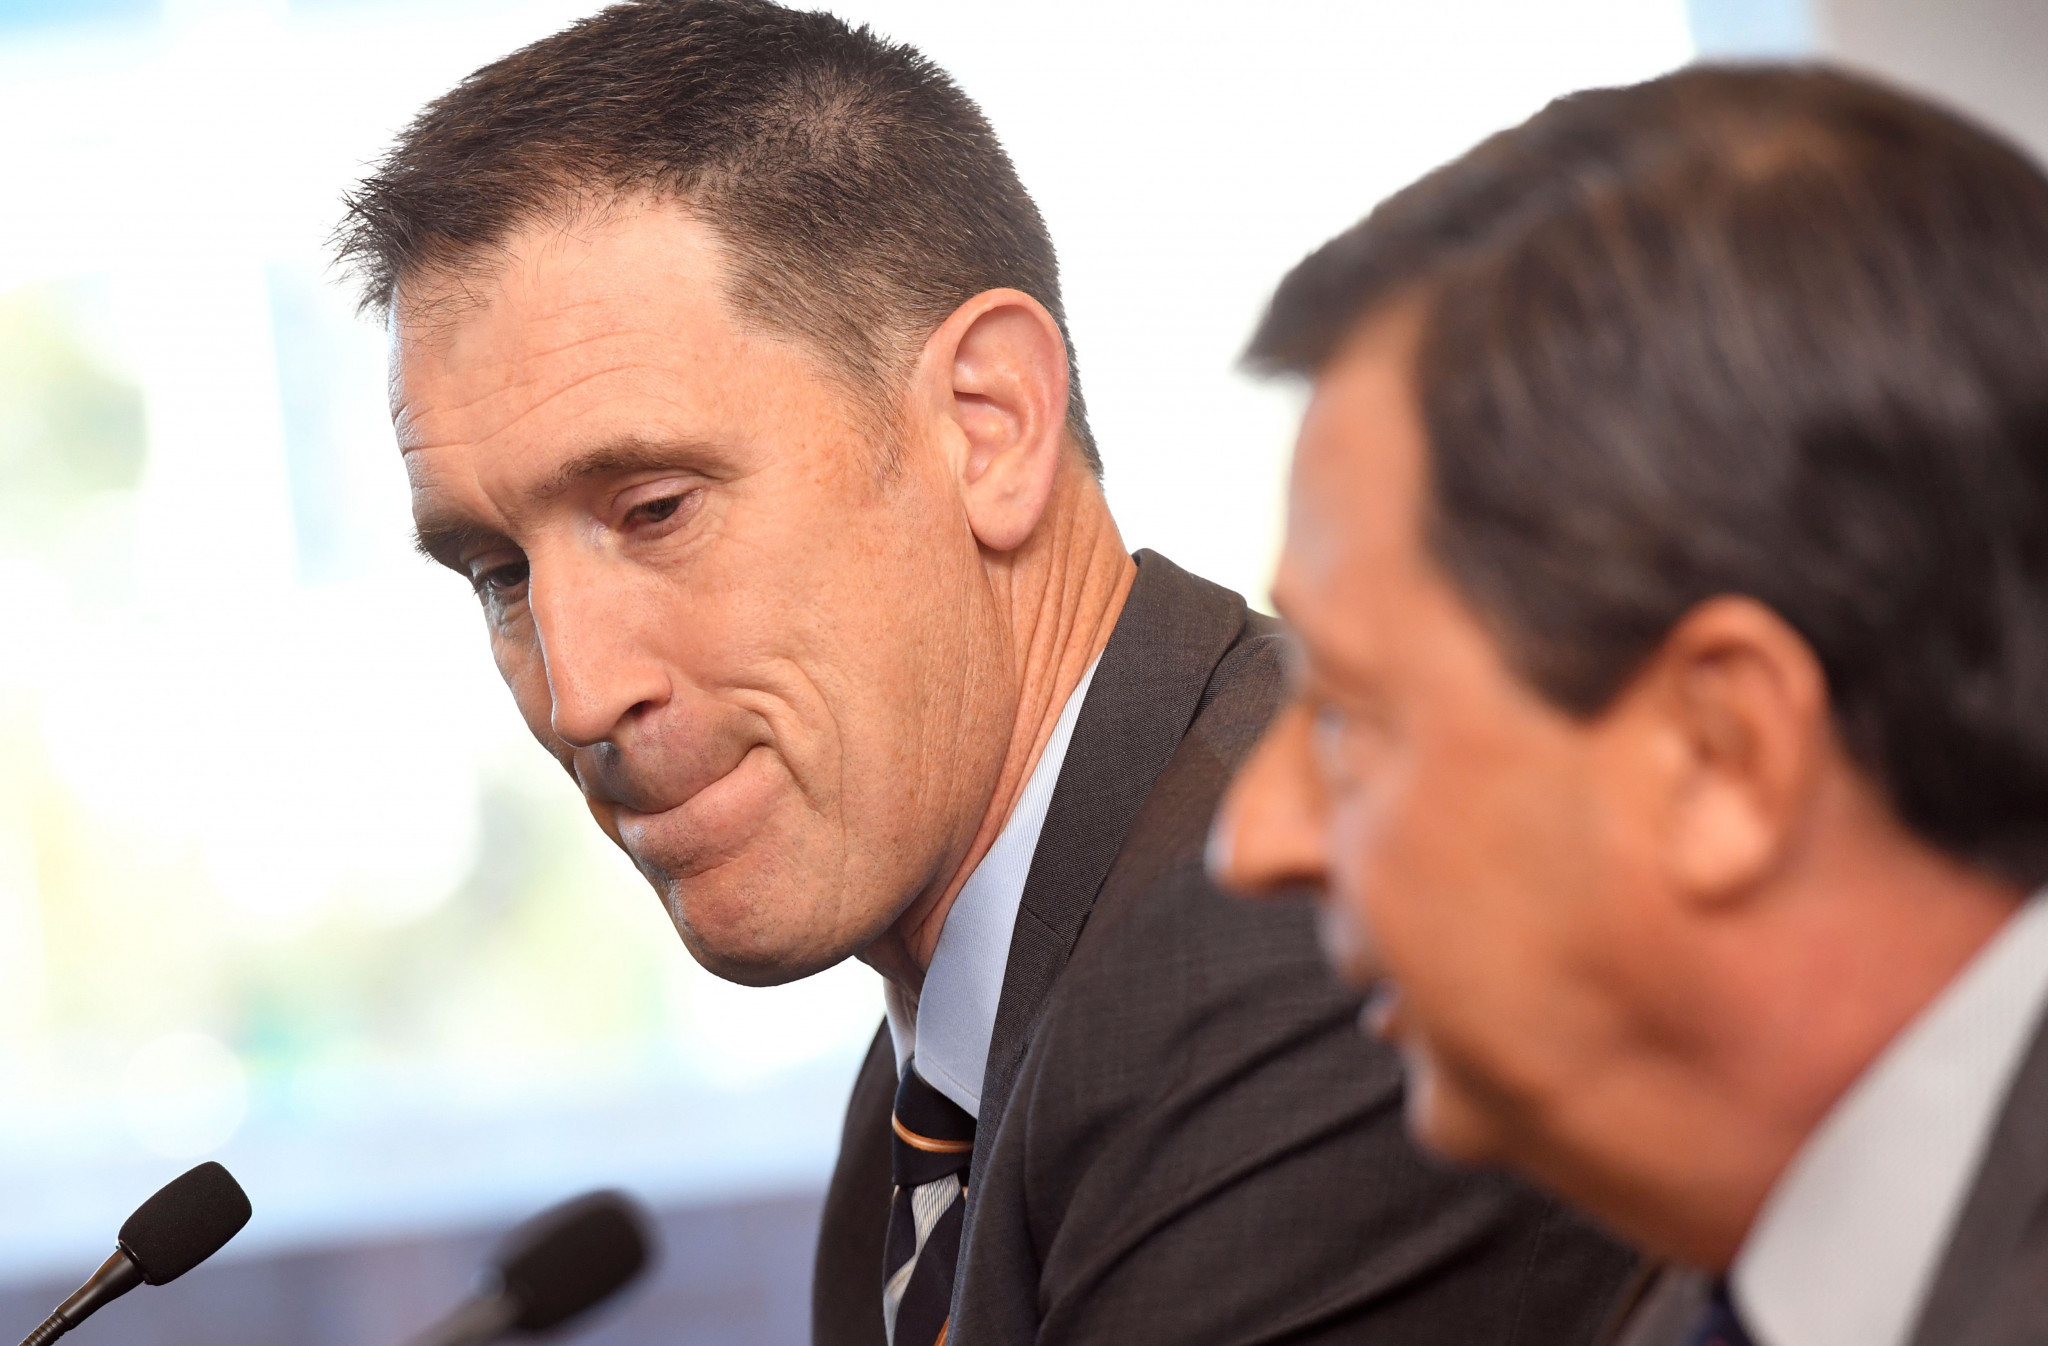 James Sutherland, left, denied his resignation was connected to the recent ball-tampering scandal in Australian cricket ©Getty Images